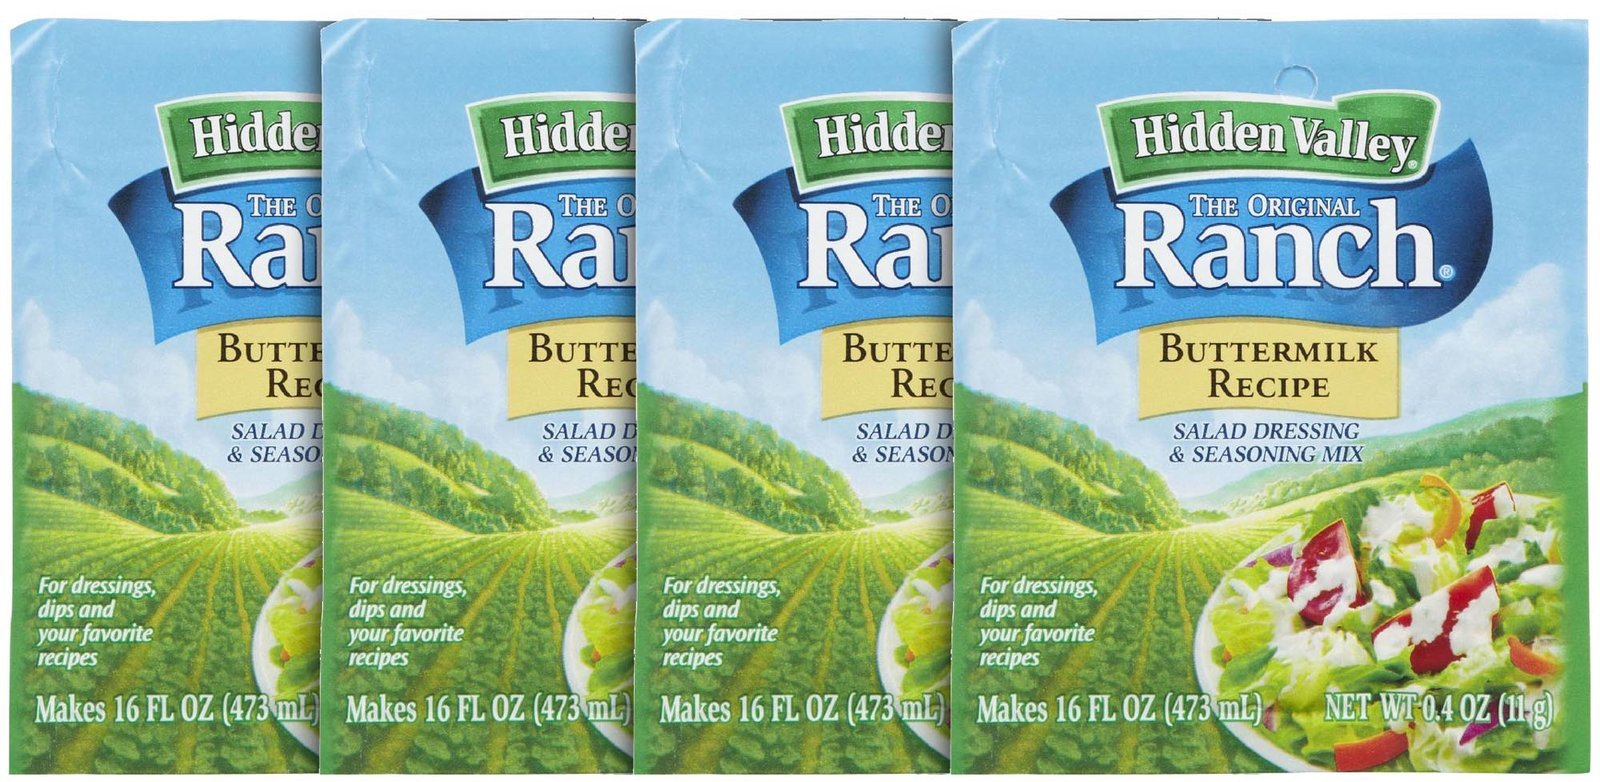 Hidden Valley The Original Ranch Salad Dressing Mix - Buttermilk - 0.4 oz - 4 pk